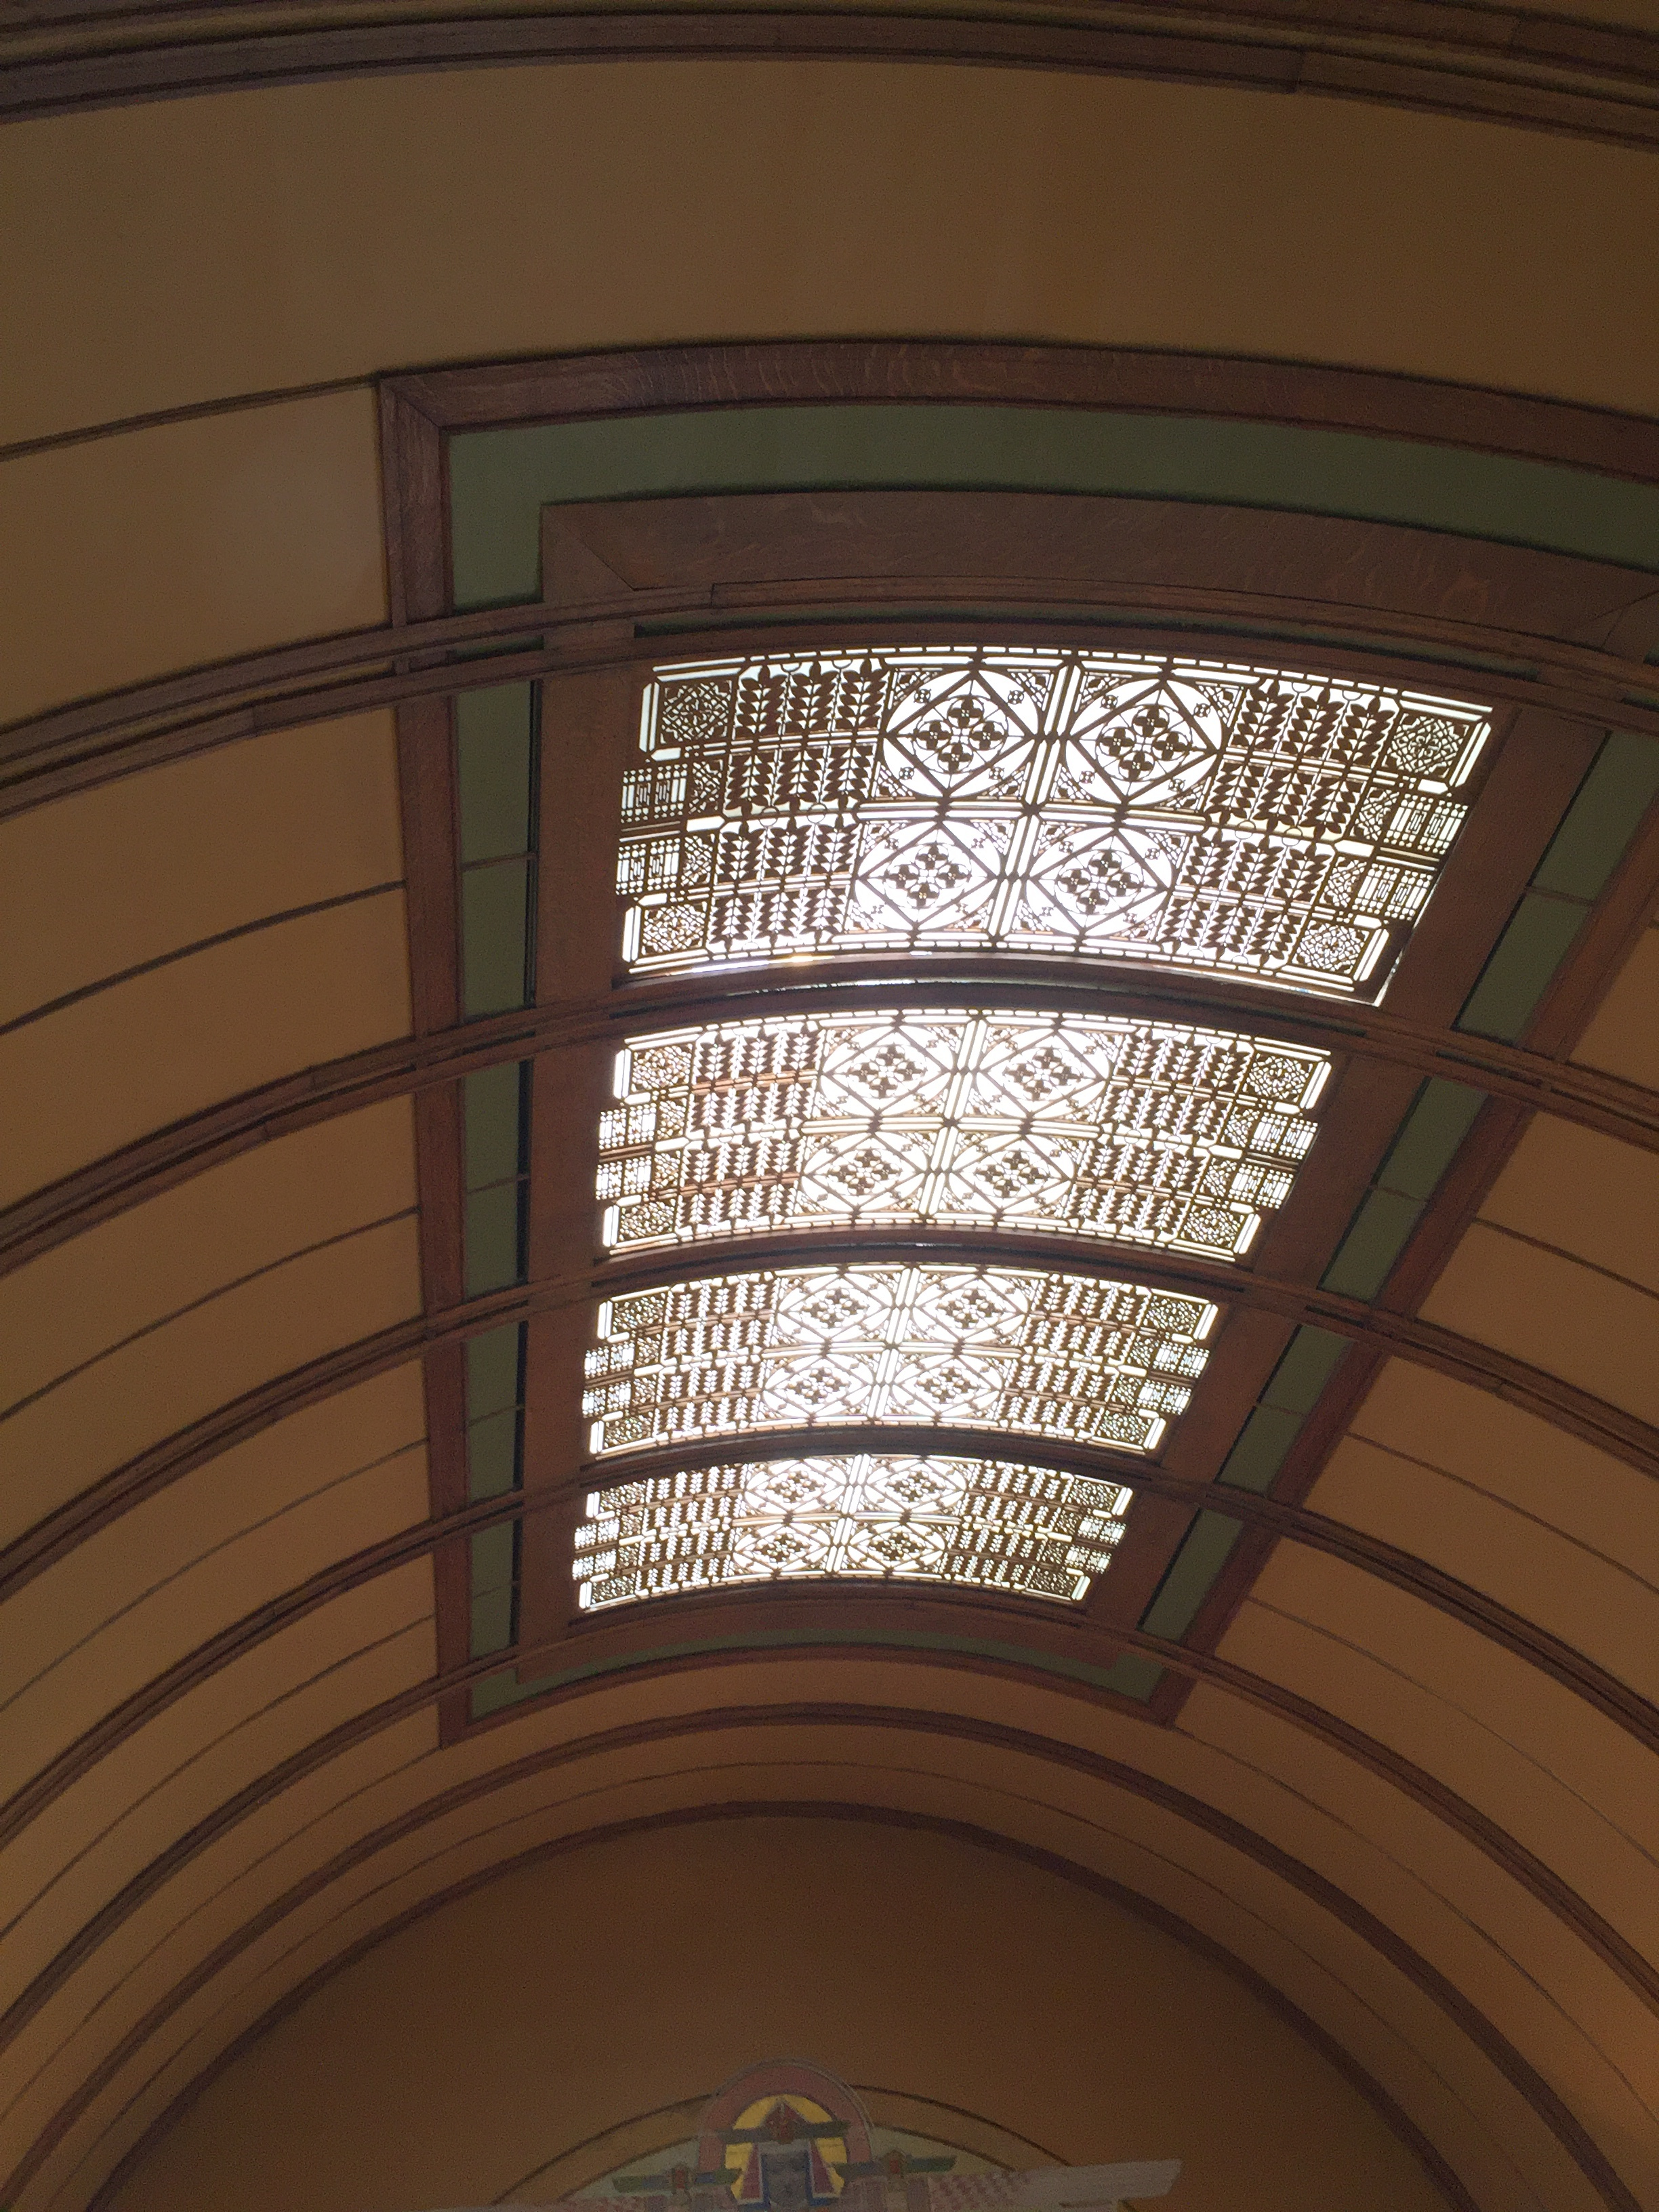 Wright's playroom ceiling